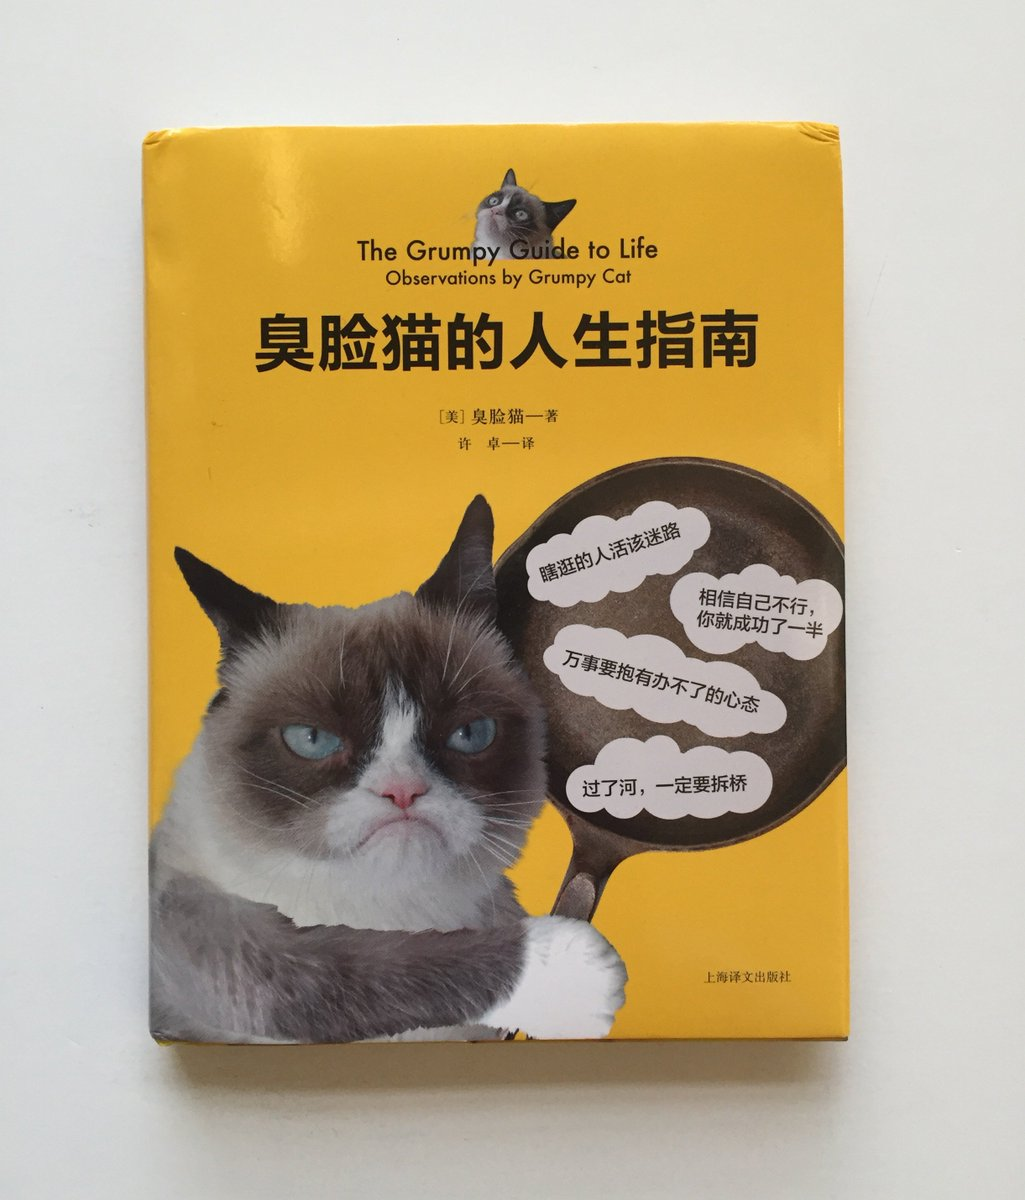 A Grumpy Guide to Life...in Simplified Chinese! @RealGrumpyCat